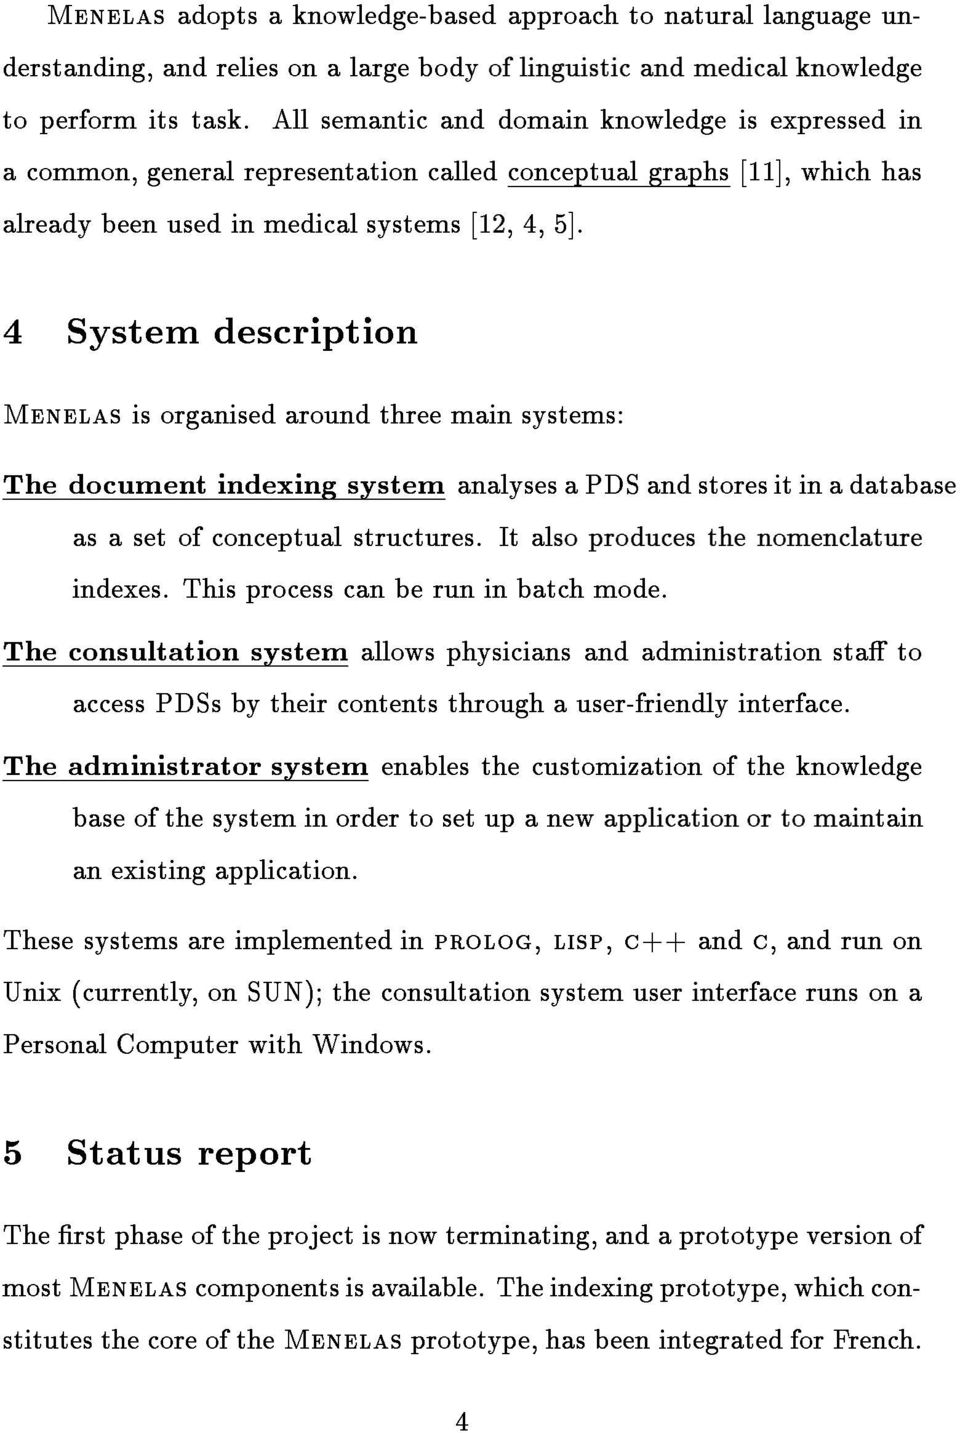 4 System description Menelas is organised around three main systems: The document indexing system analyses a PDS and stores it in a database as a set of conceptual structures.